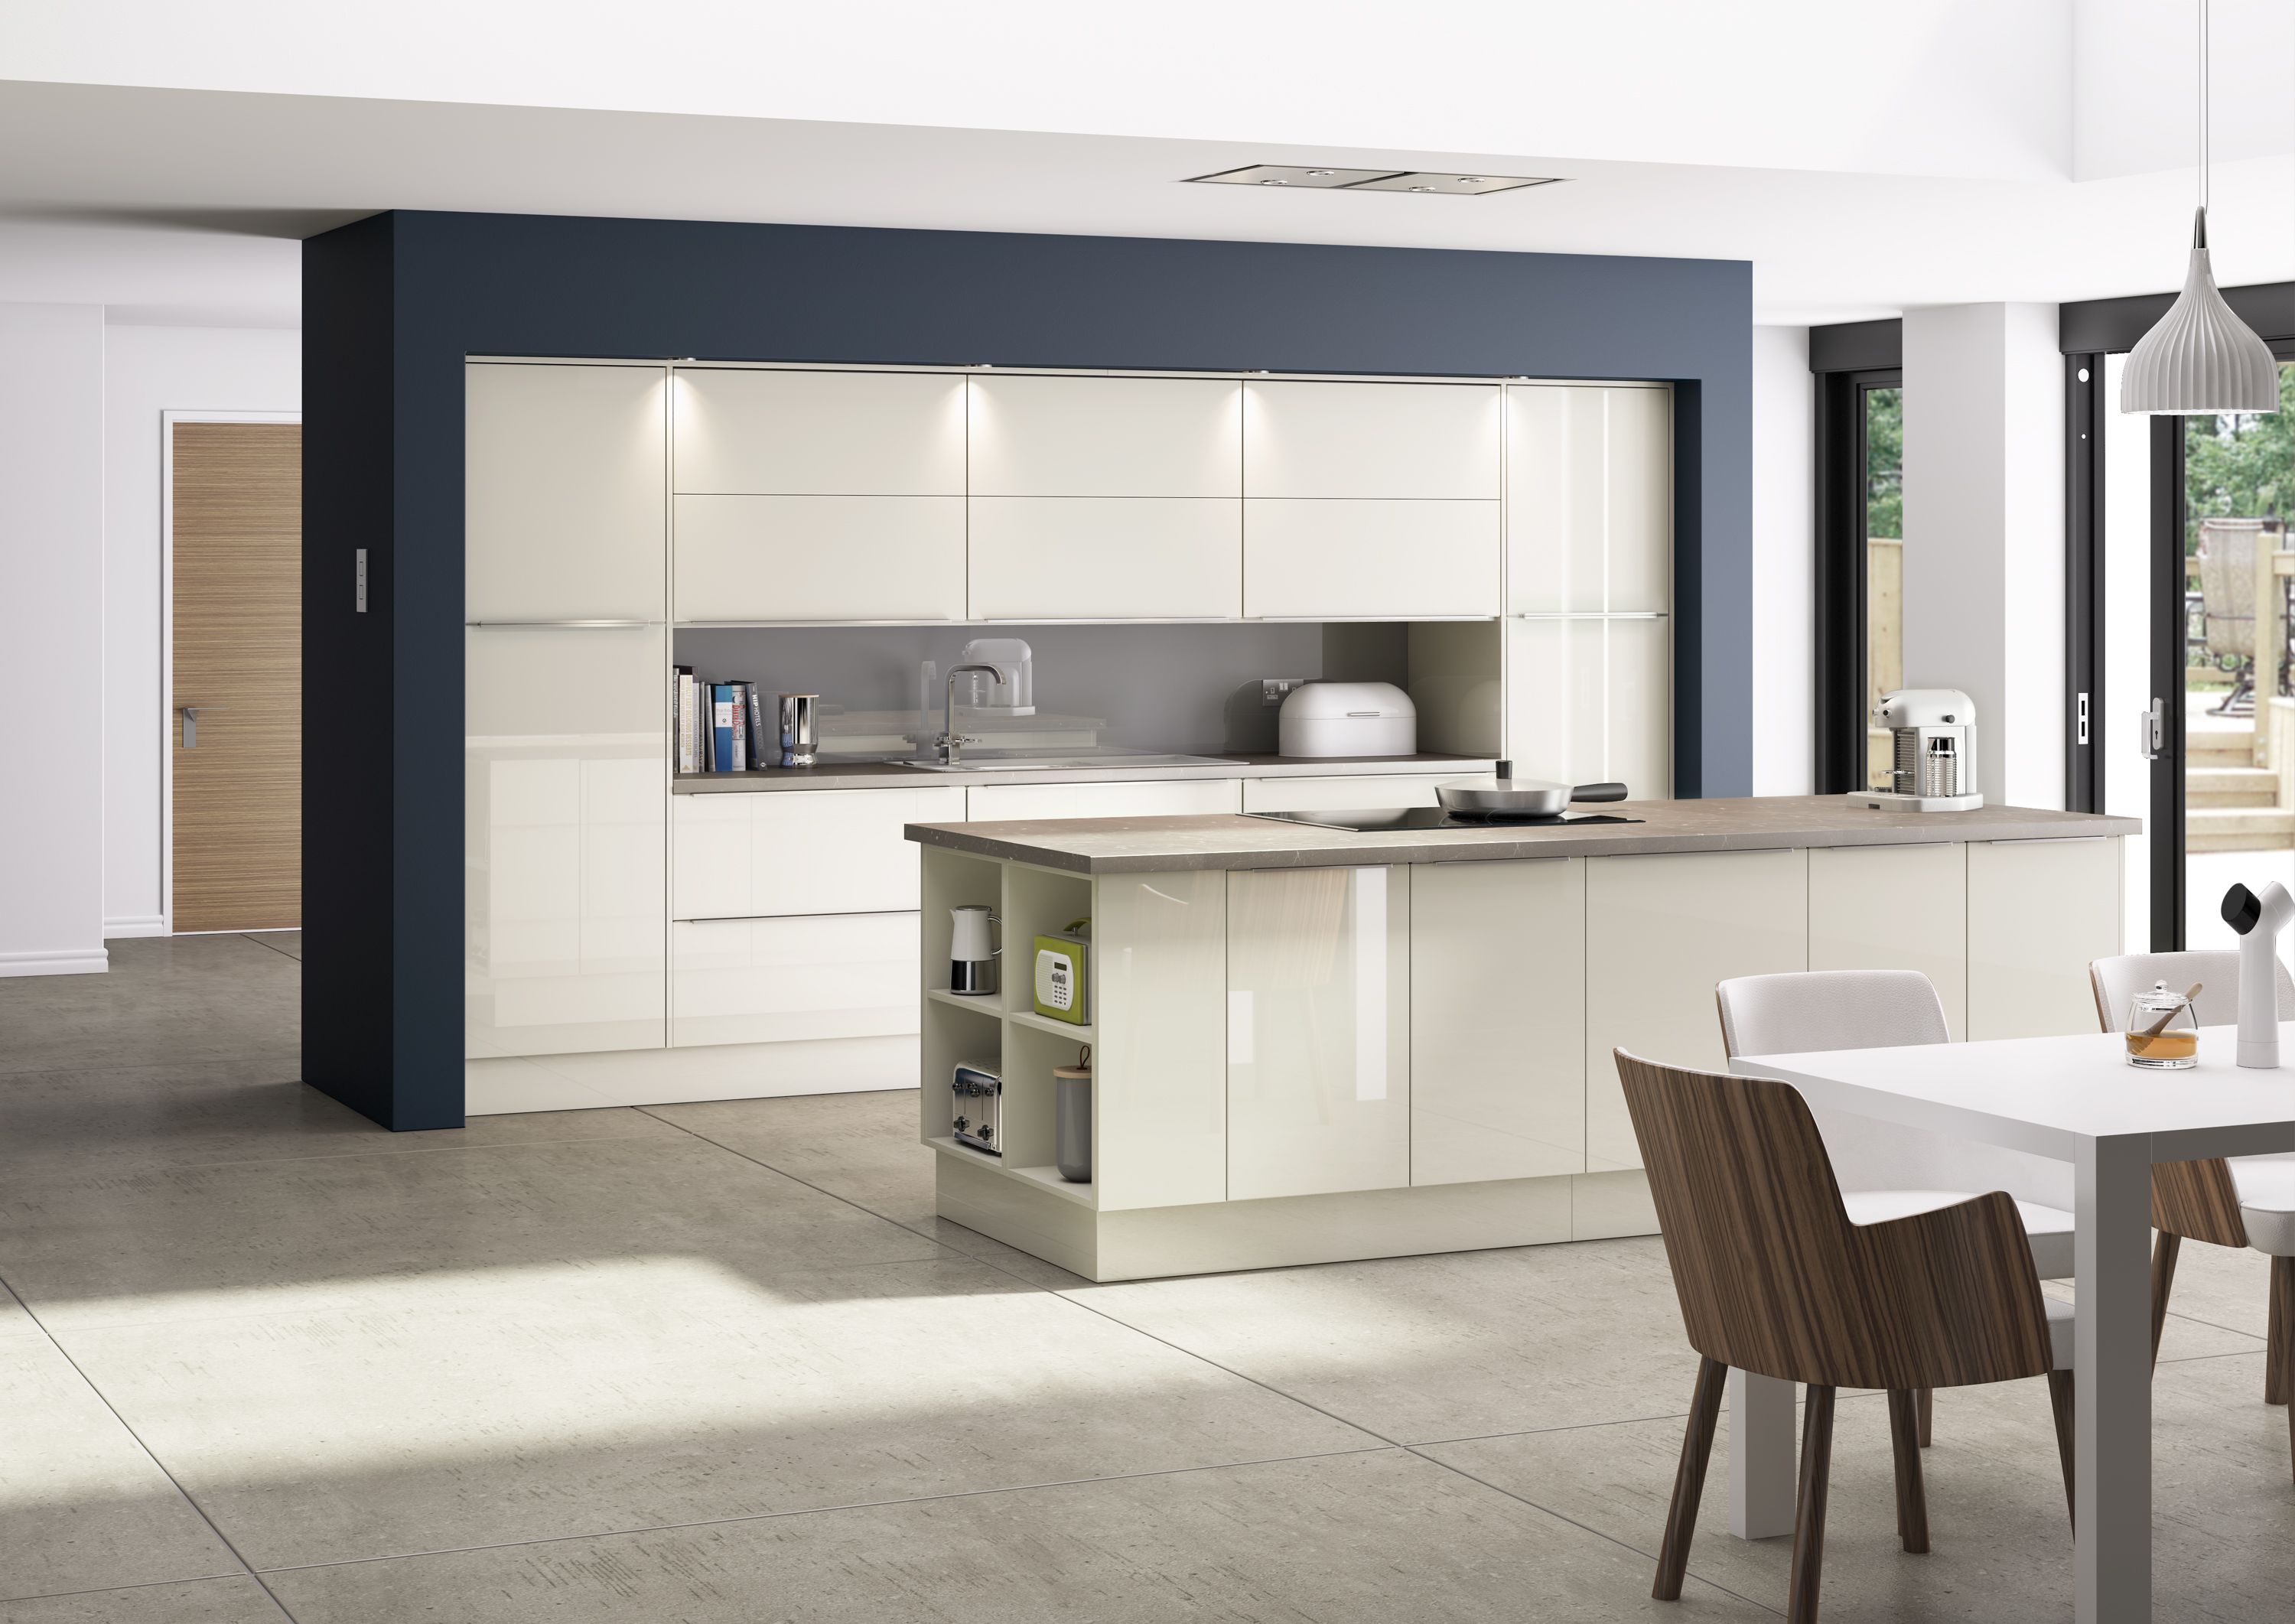 Inline Gloss Ice Ivory | Whitecroft Kitchen | Pinterest | Inline ...